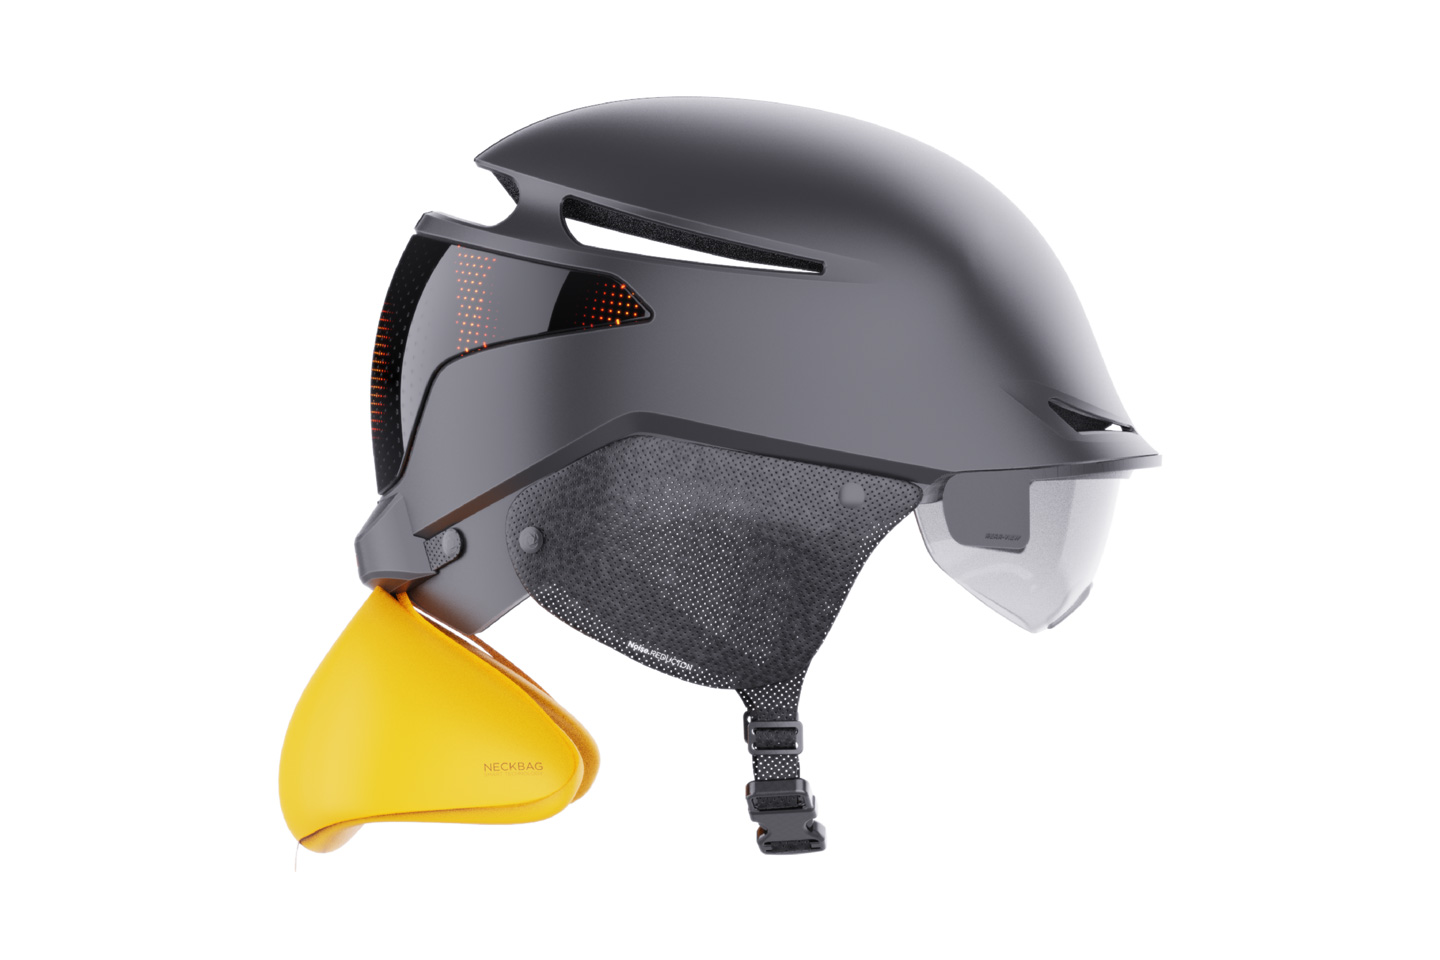 'Innovative Bicycle Helmet with auto-deploying neck airbag' wins Bronze at the YD x KeyShot Design Challenge